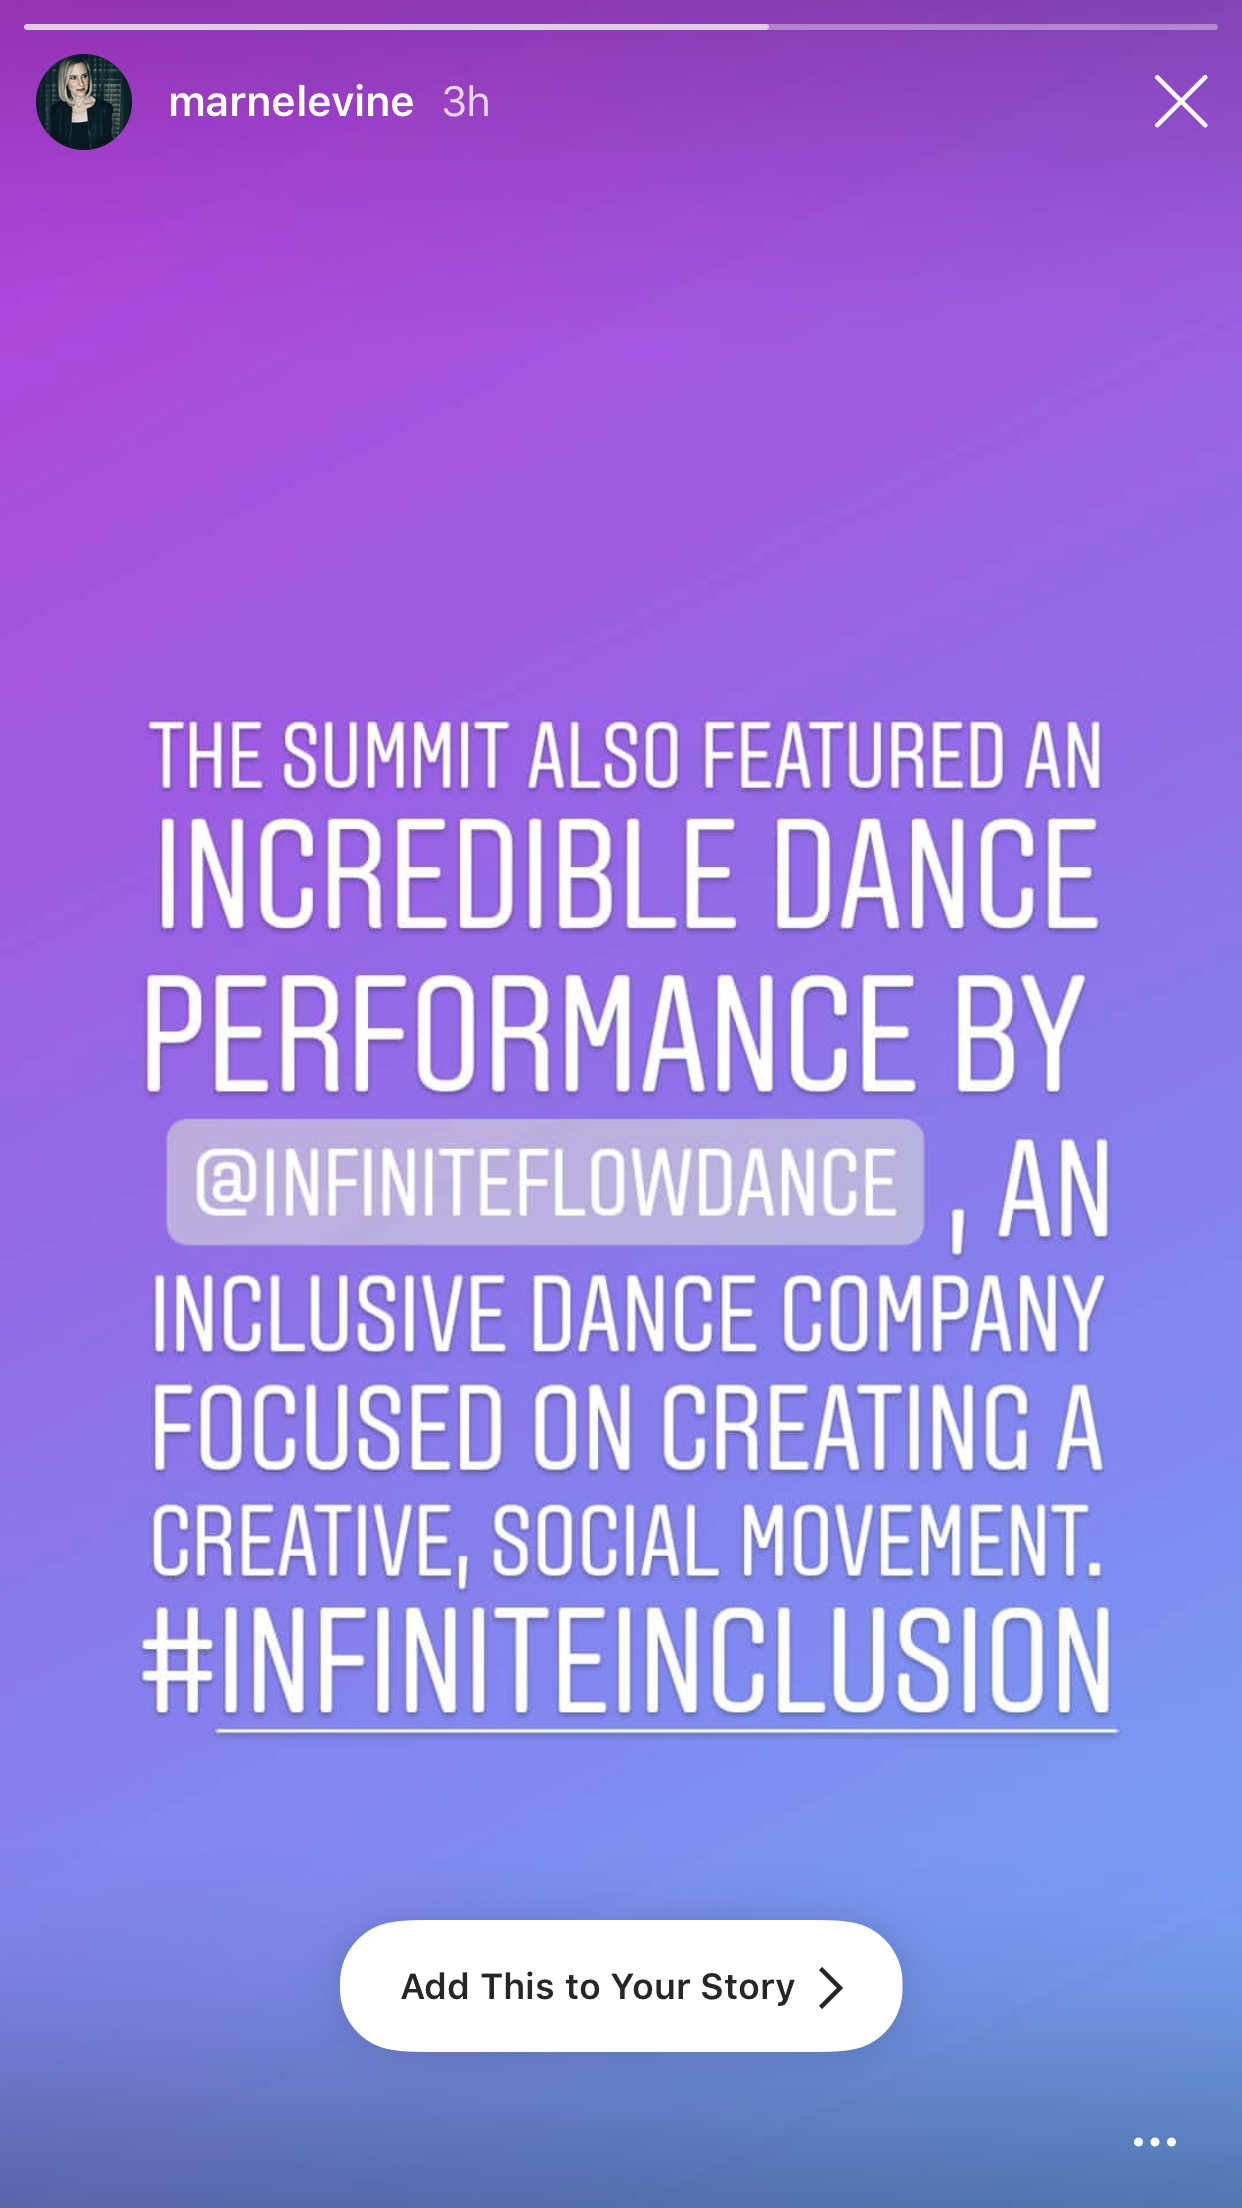 Thank you Marne Levine, COO Instagram for the shoutout.